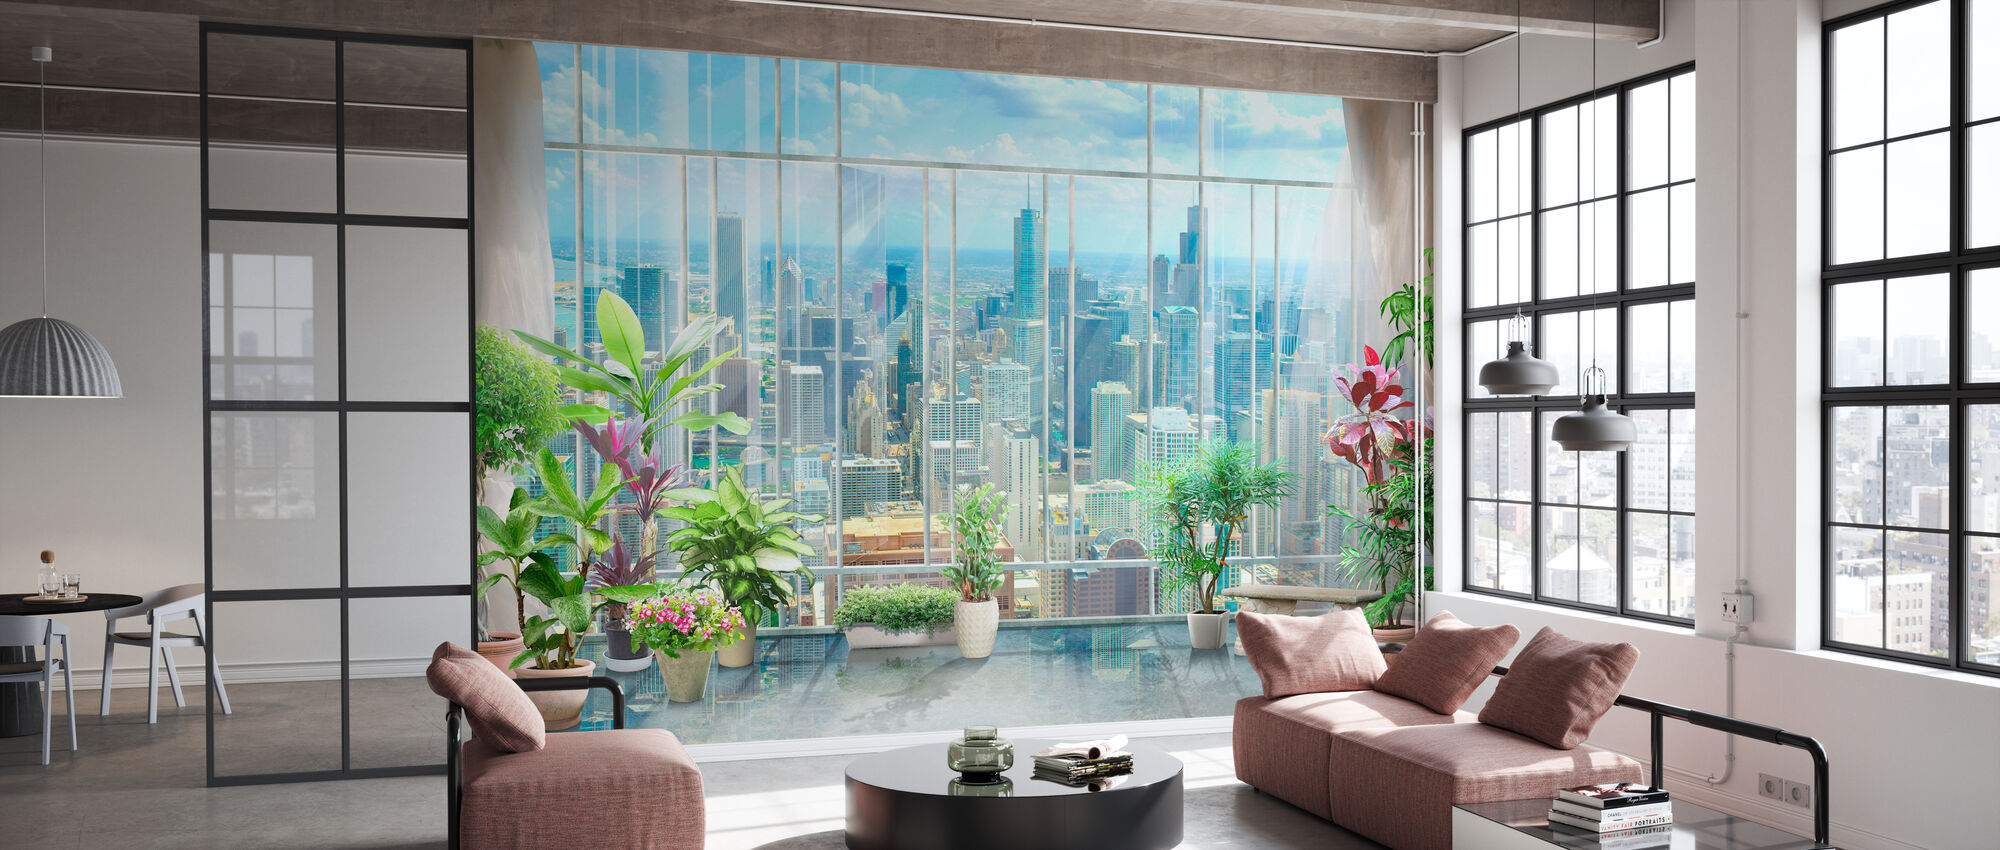 Chicago View - Wallpaper - Office